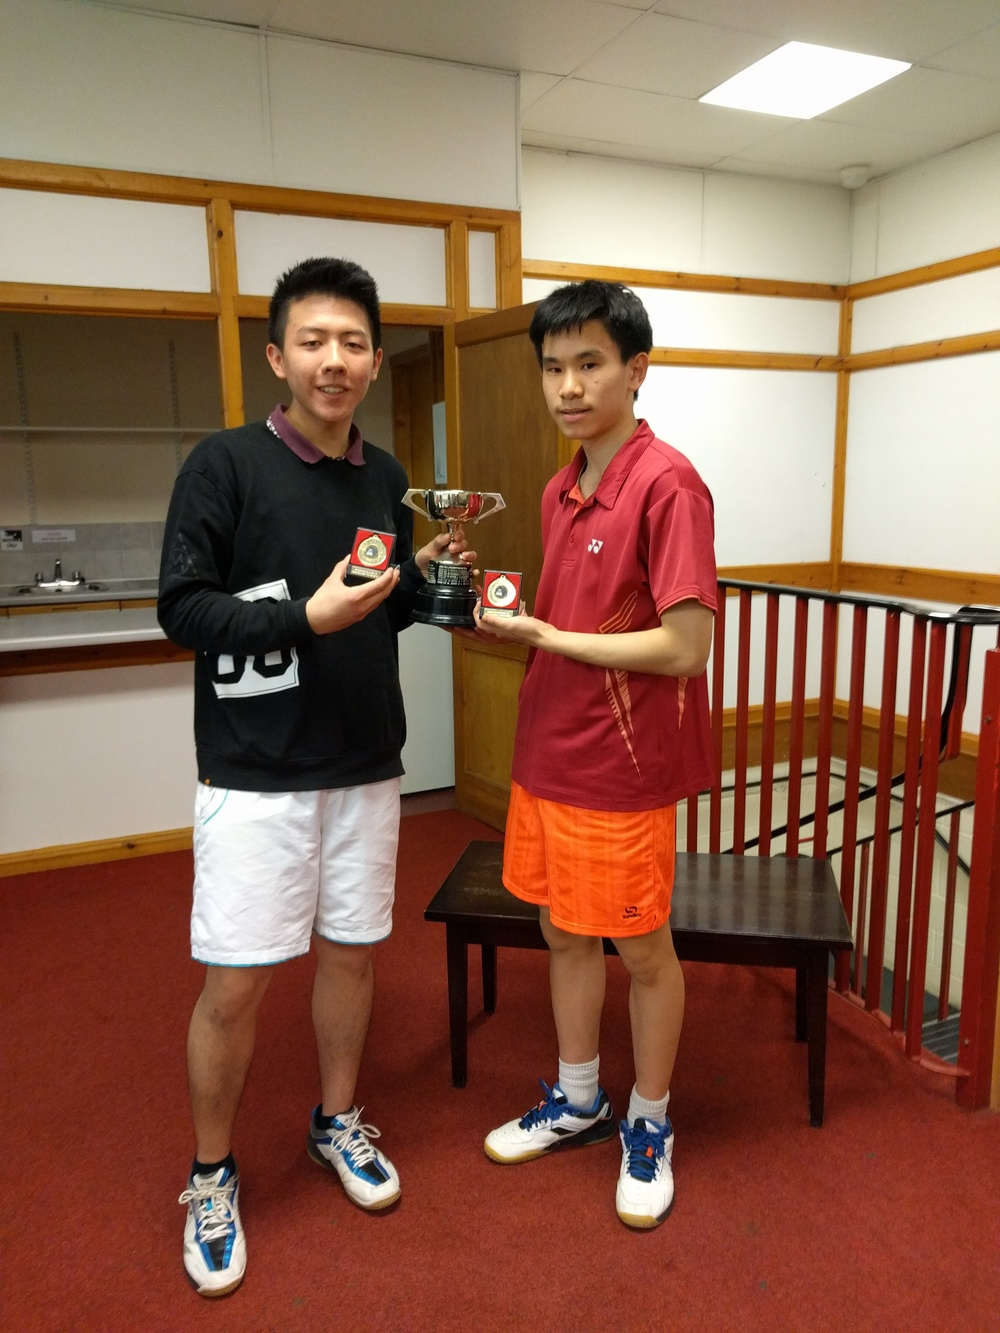 U19 Boys Doubles Winners: Leo Huang & James Xu